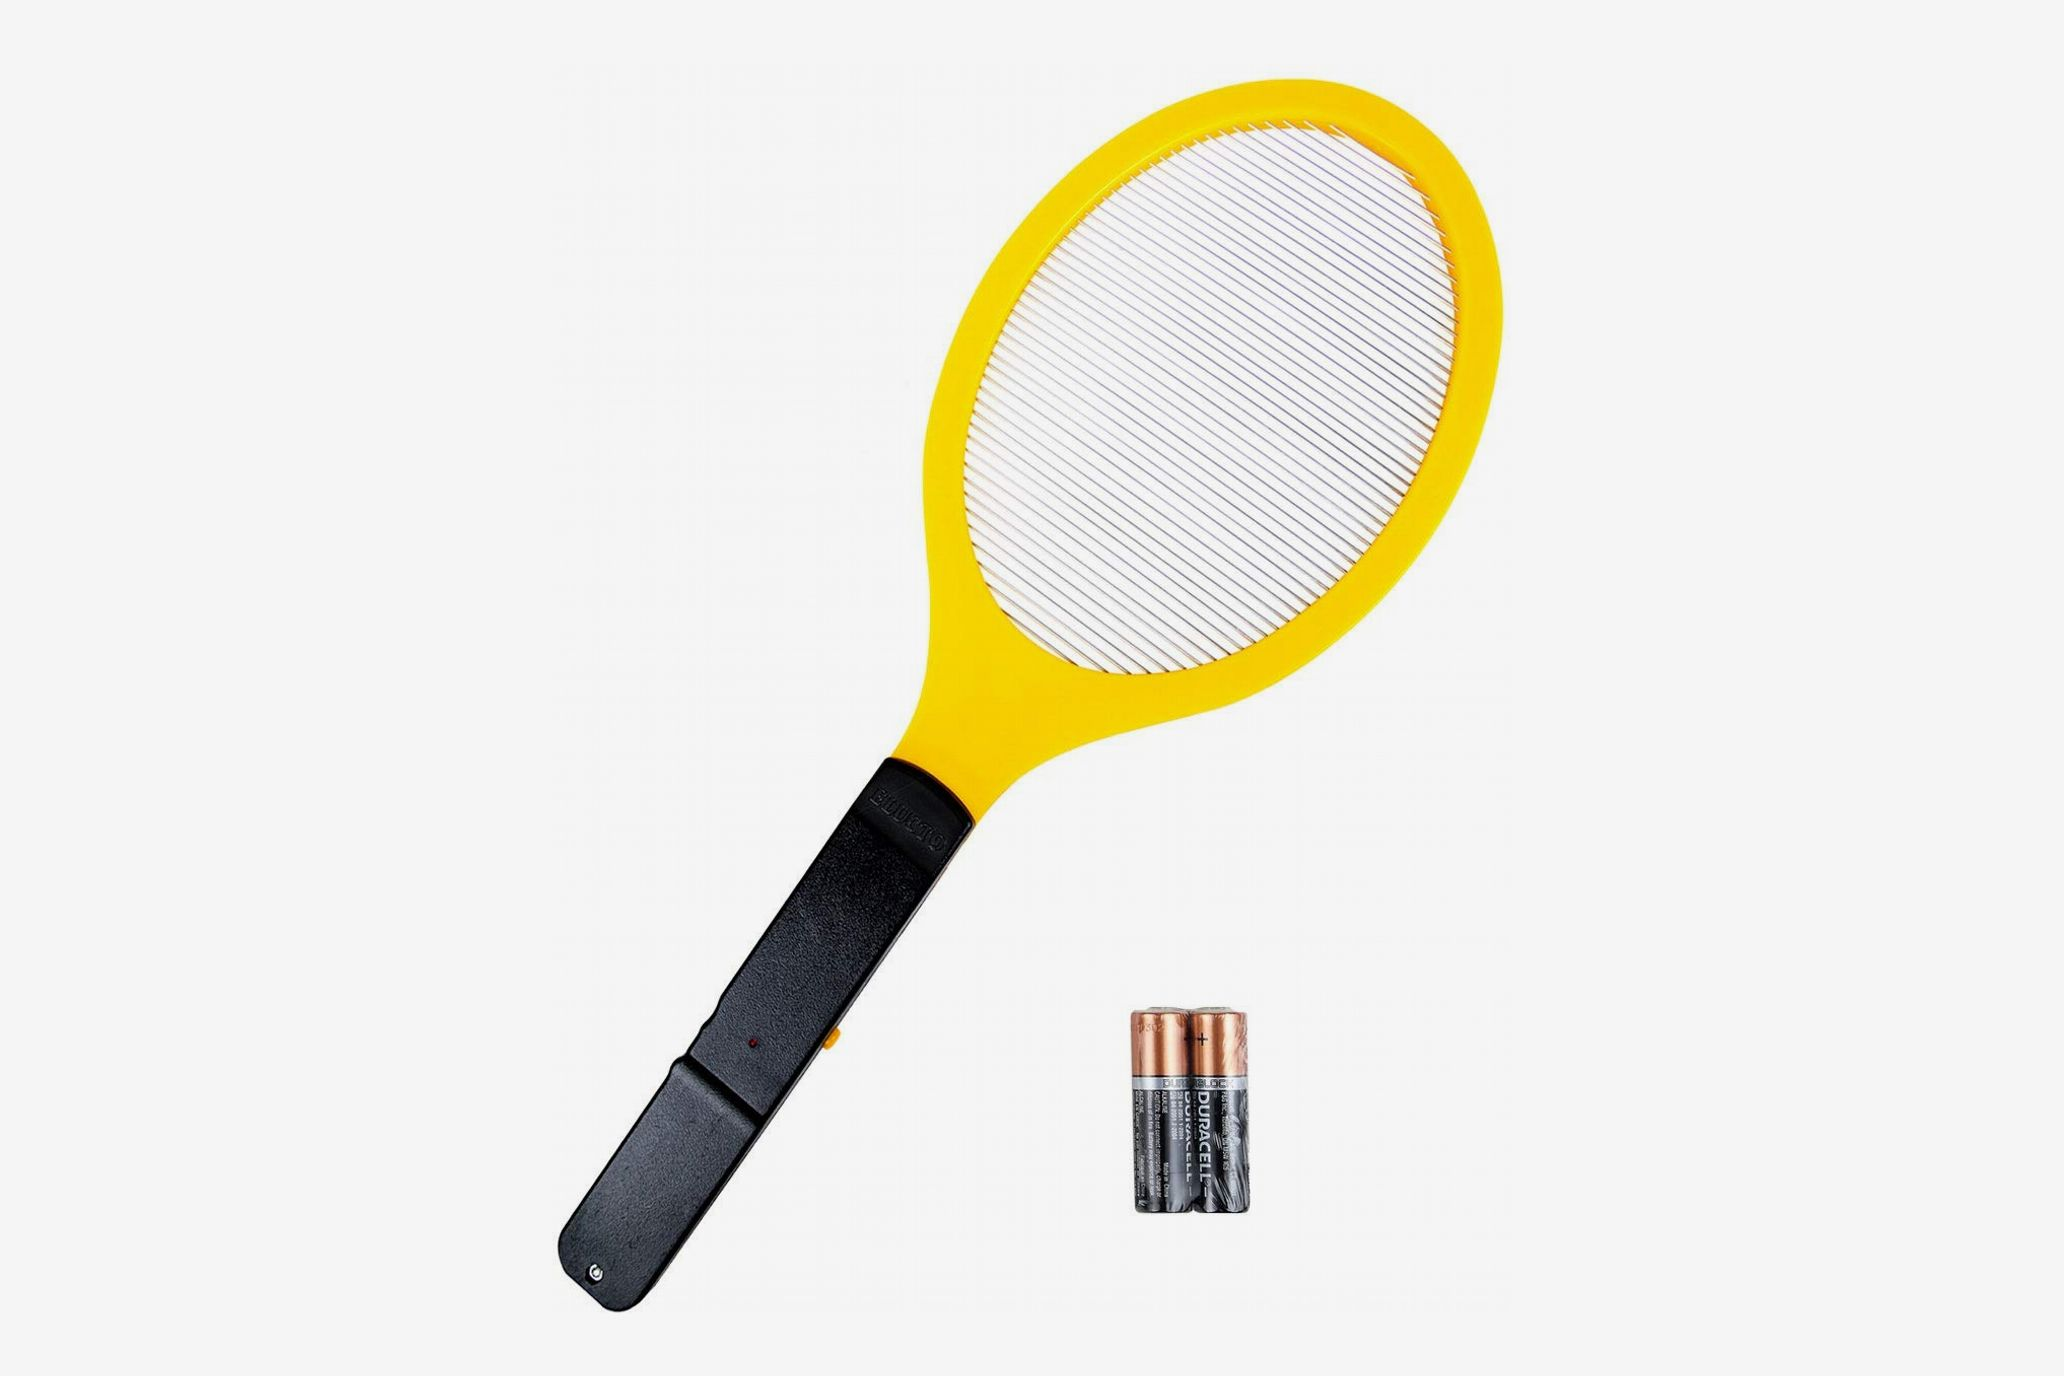 Elucto Large Electric Bug Zapper Racket (2 Duracell AA Batteries Included)